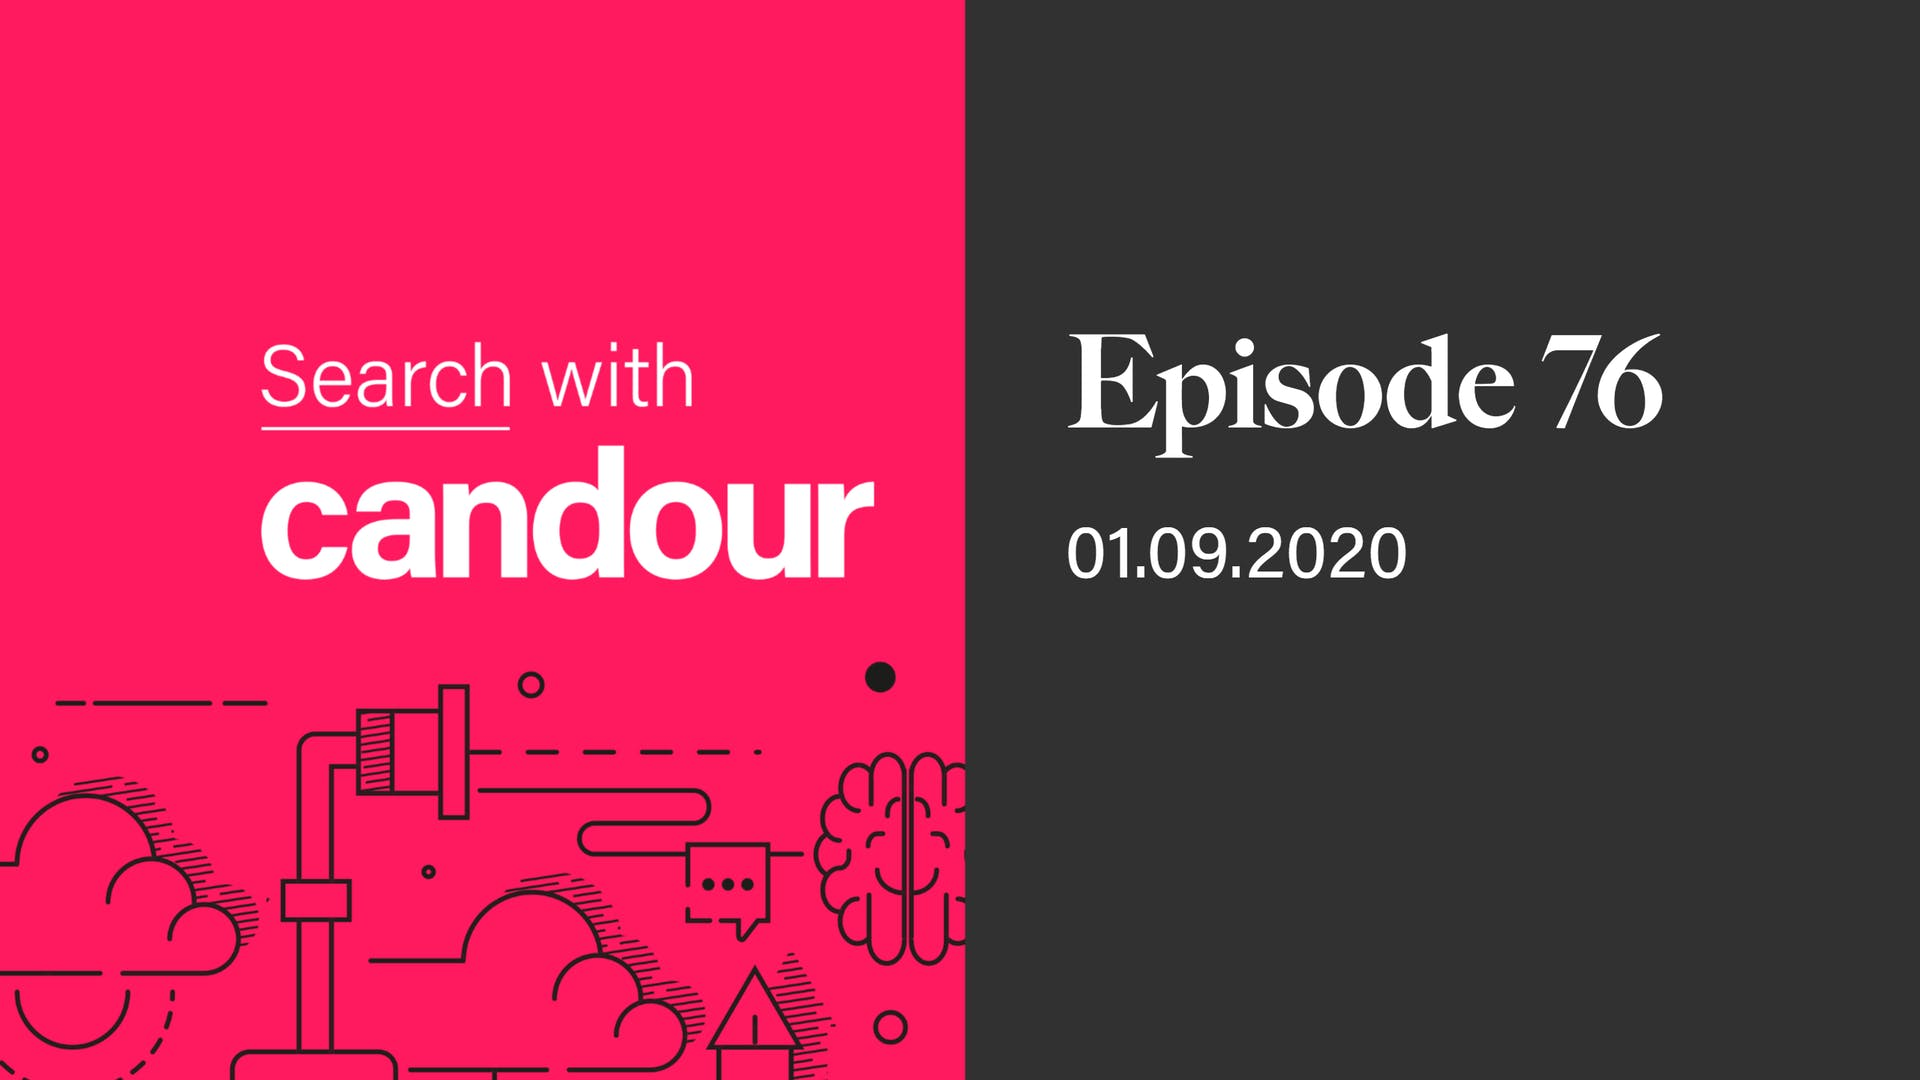 Search with Candour - Episode 76